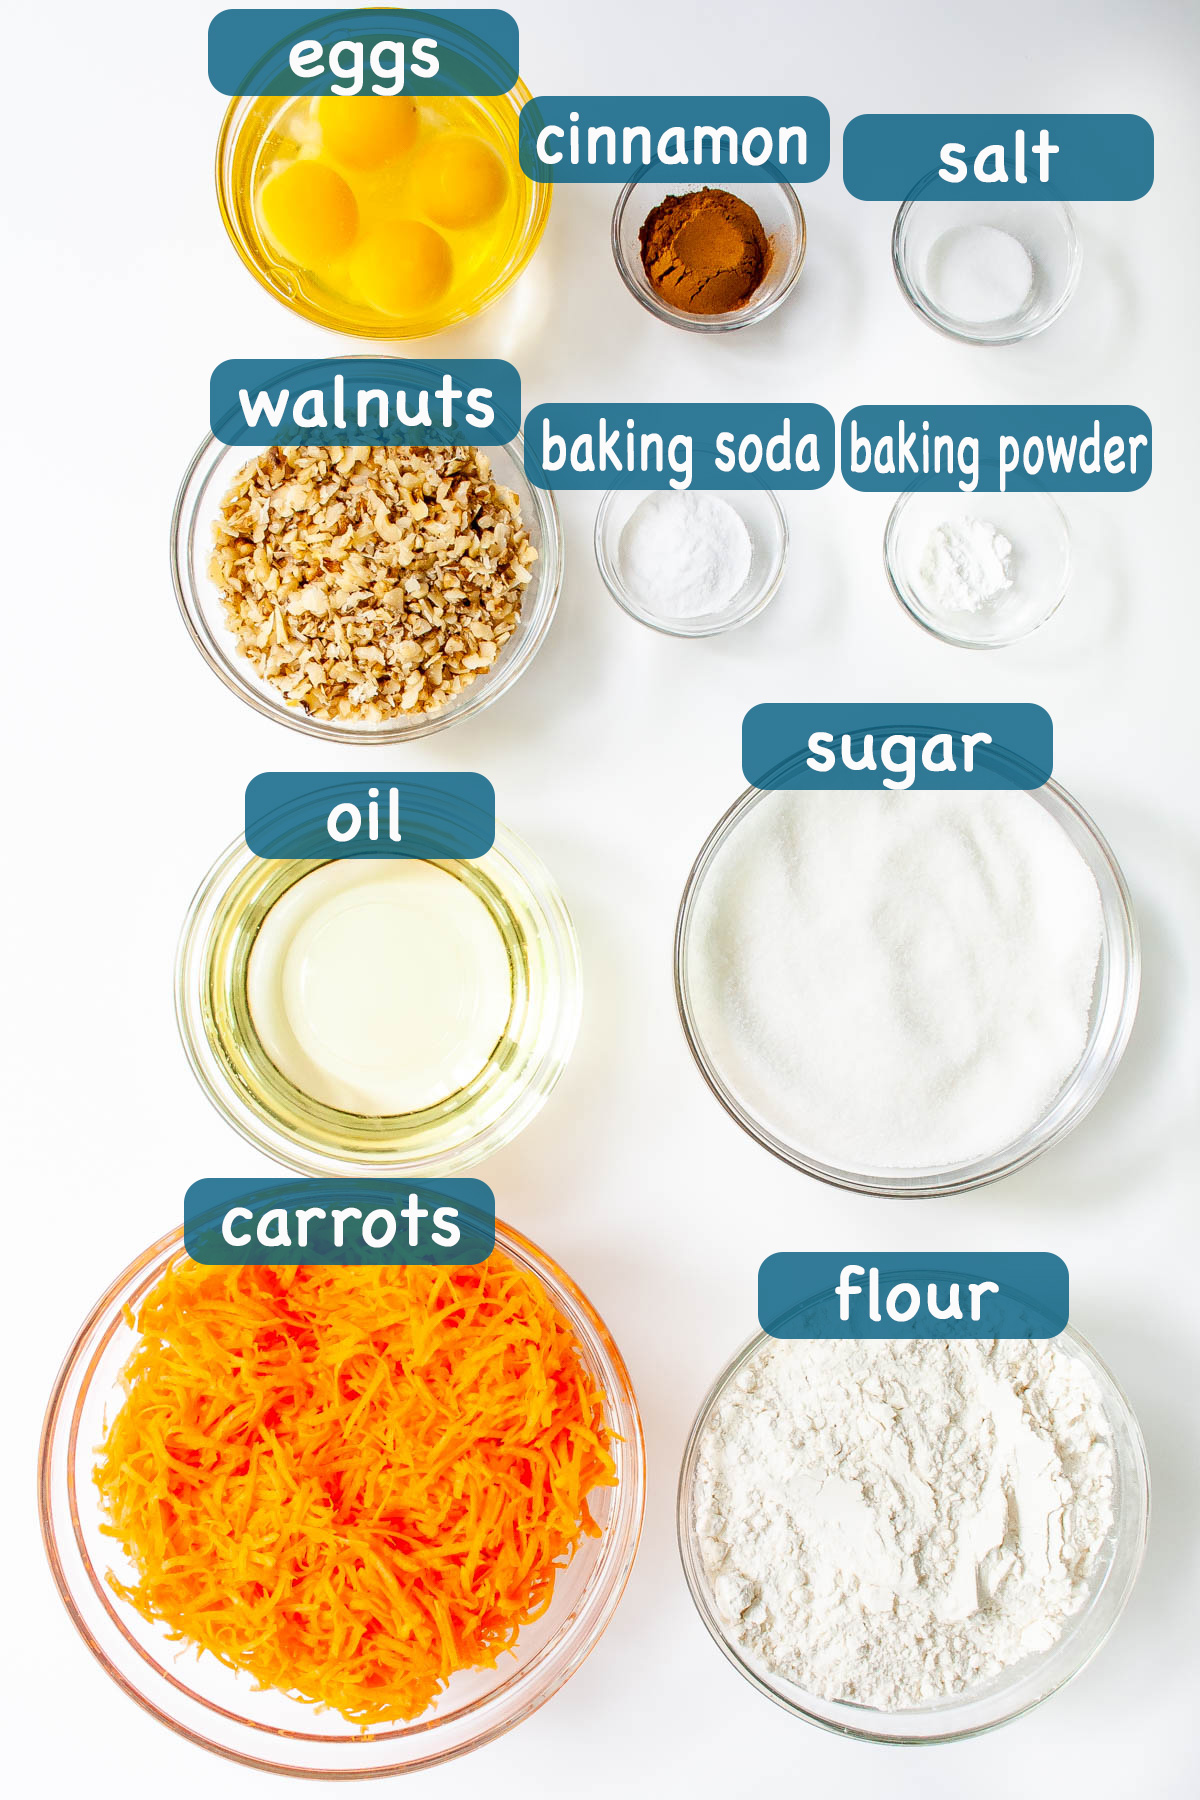 ingredients needed for carrot cake